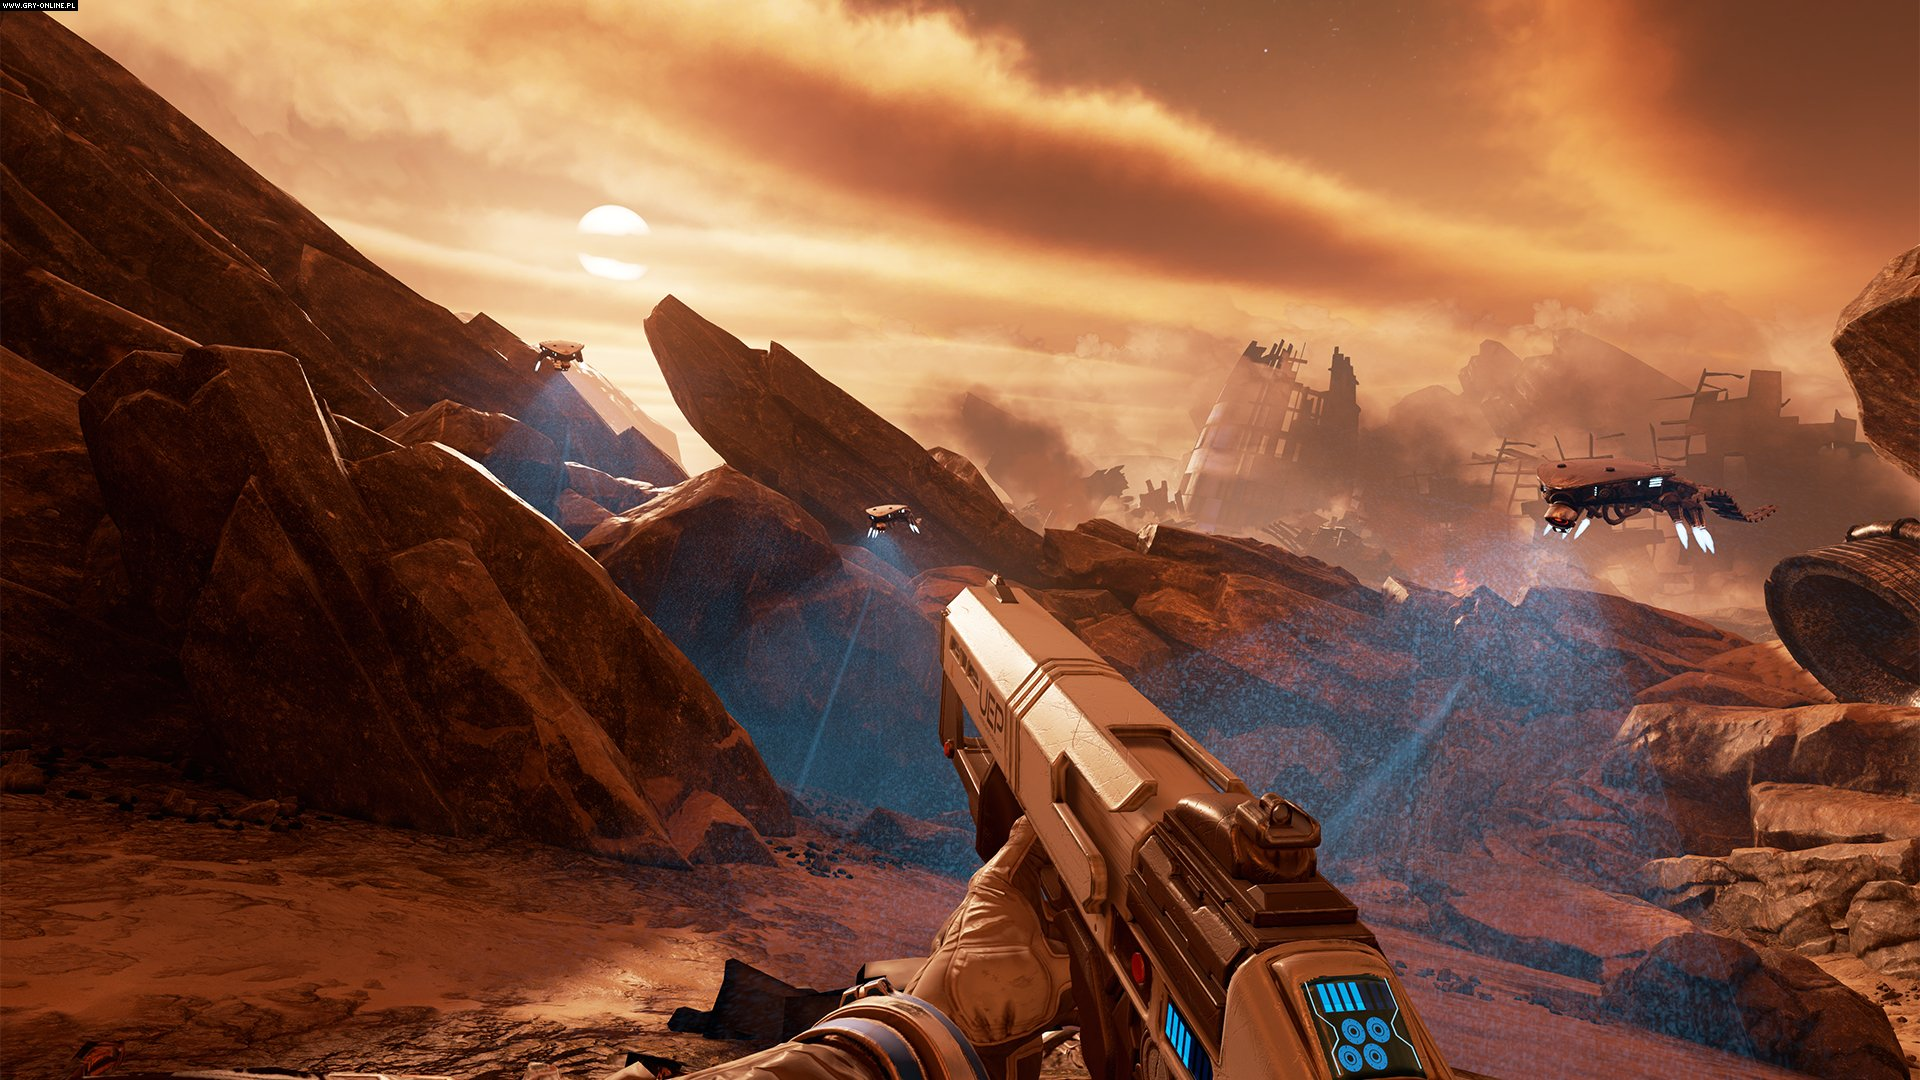 Farpoint PS4 Games Image 1/10, Impulse Gear, Sony Interactive Entertainment